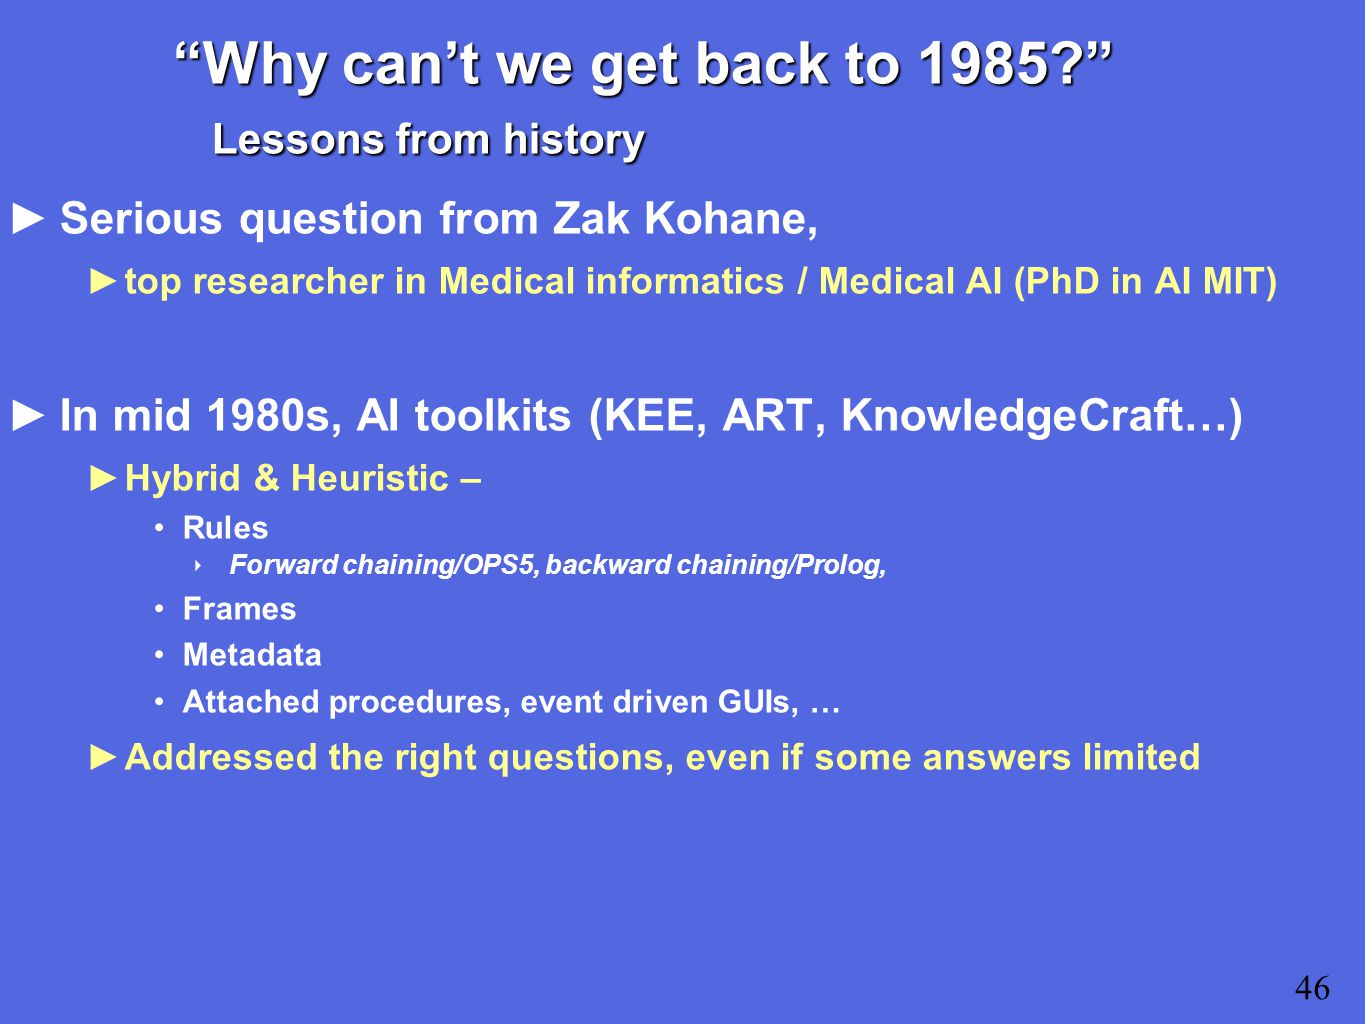 Why can't we get back to 1985 Lessons from history ►Serious question from Zak Kohane, ►top researcher in Medical informatics / Medical AI (PhD in AI MIT) ►In mid 1980s, AI toolkits (KEE, ART, KnowledgeCraft…) ►Hybrid & Heuristic – Rules ‣ Forward chaining/OPS5, backward chaining/Prolog, Frames Metadata Attached procedures, event driven GUIs, … ►Addressed the right questions, even if some answers limited 46